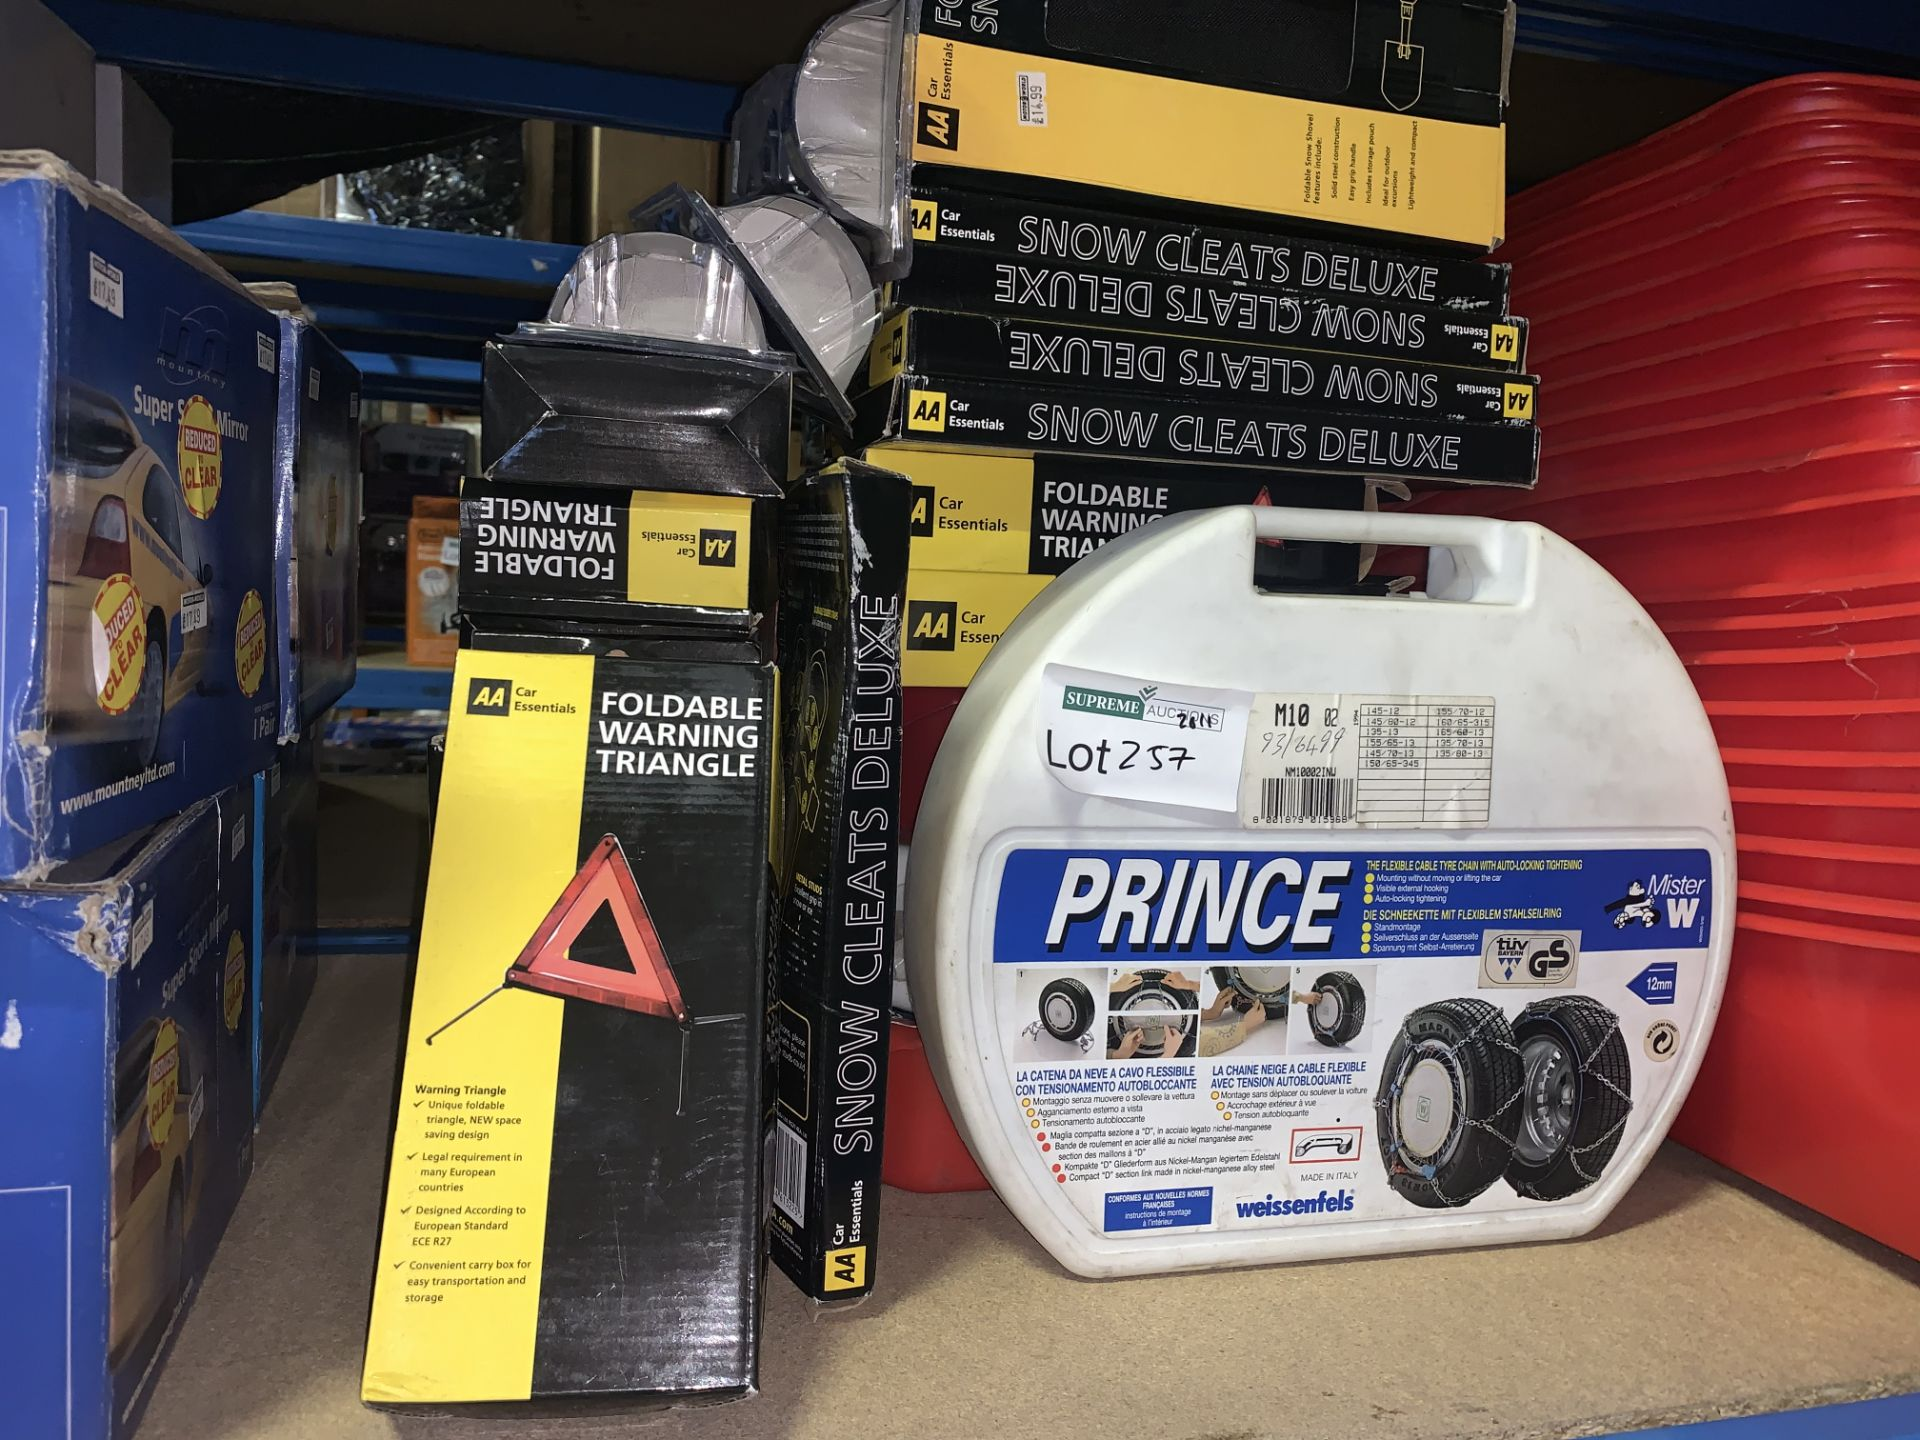 25 PIECE MIXED LOT INCLUDING AA FOLDABLE WARNING TRIANGLES, PRINCE CABLE TYRE CHAINS, SNOW AND ICE